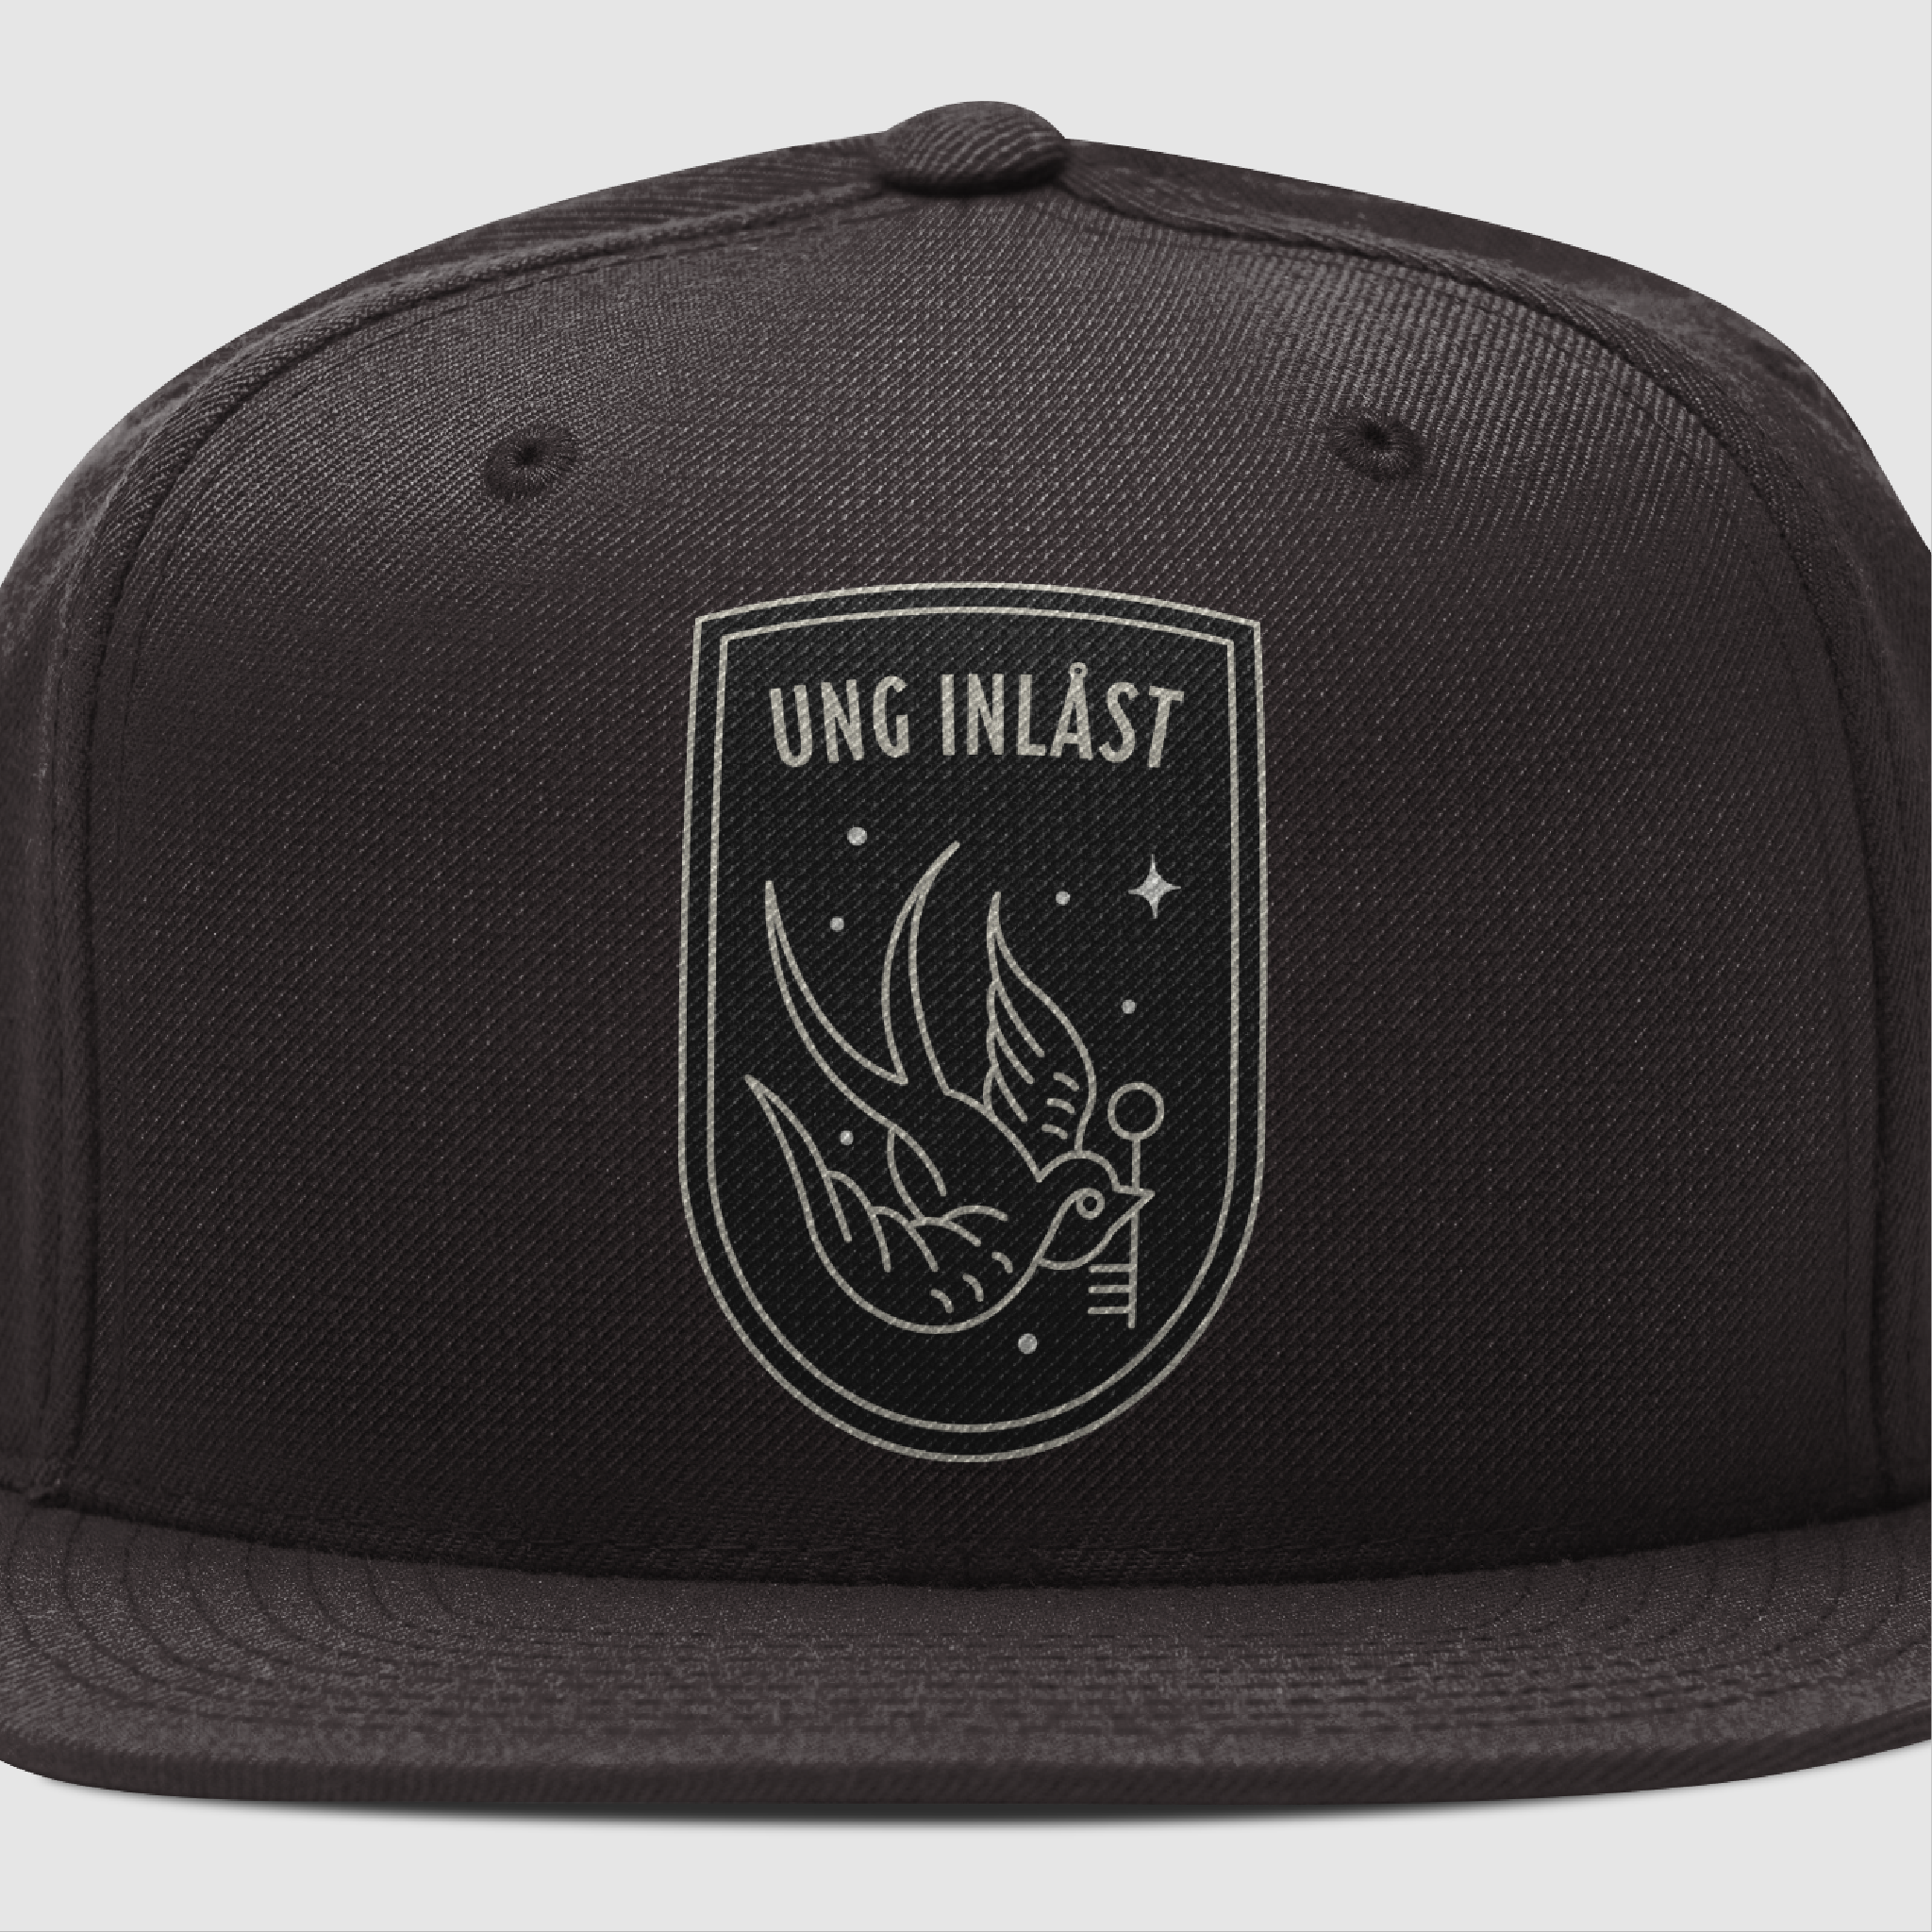 Ung inlast 6 - Black.png